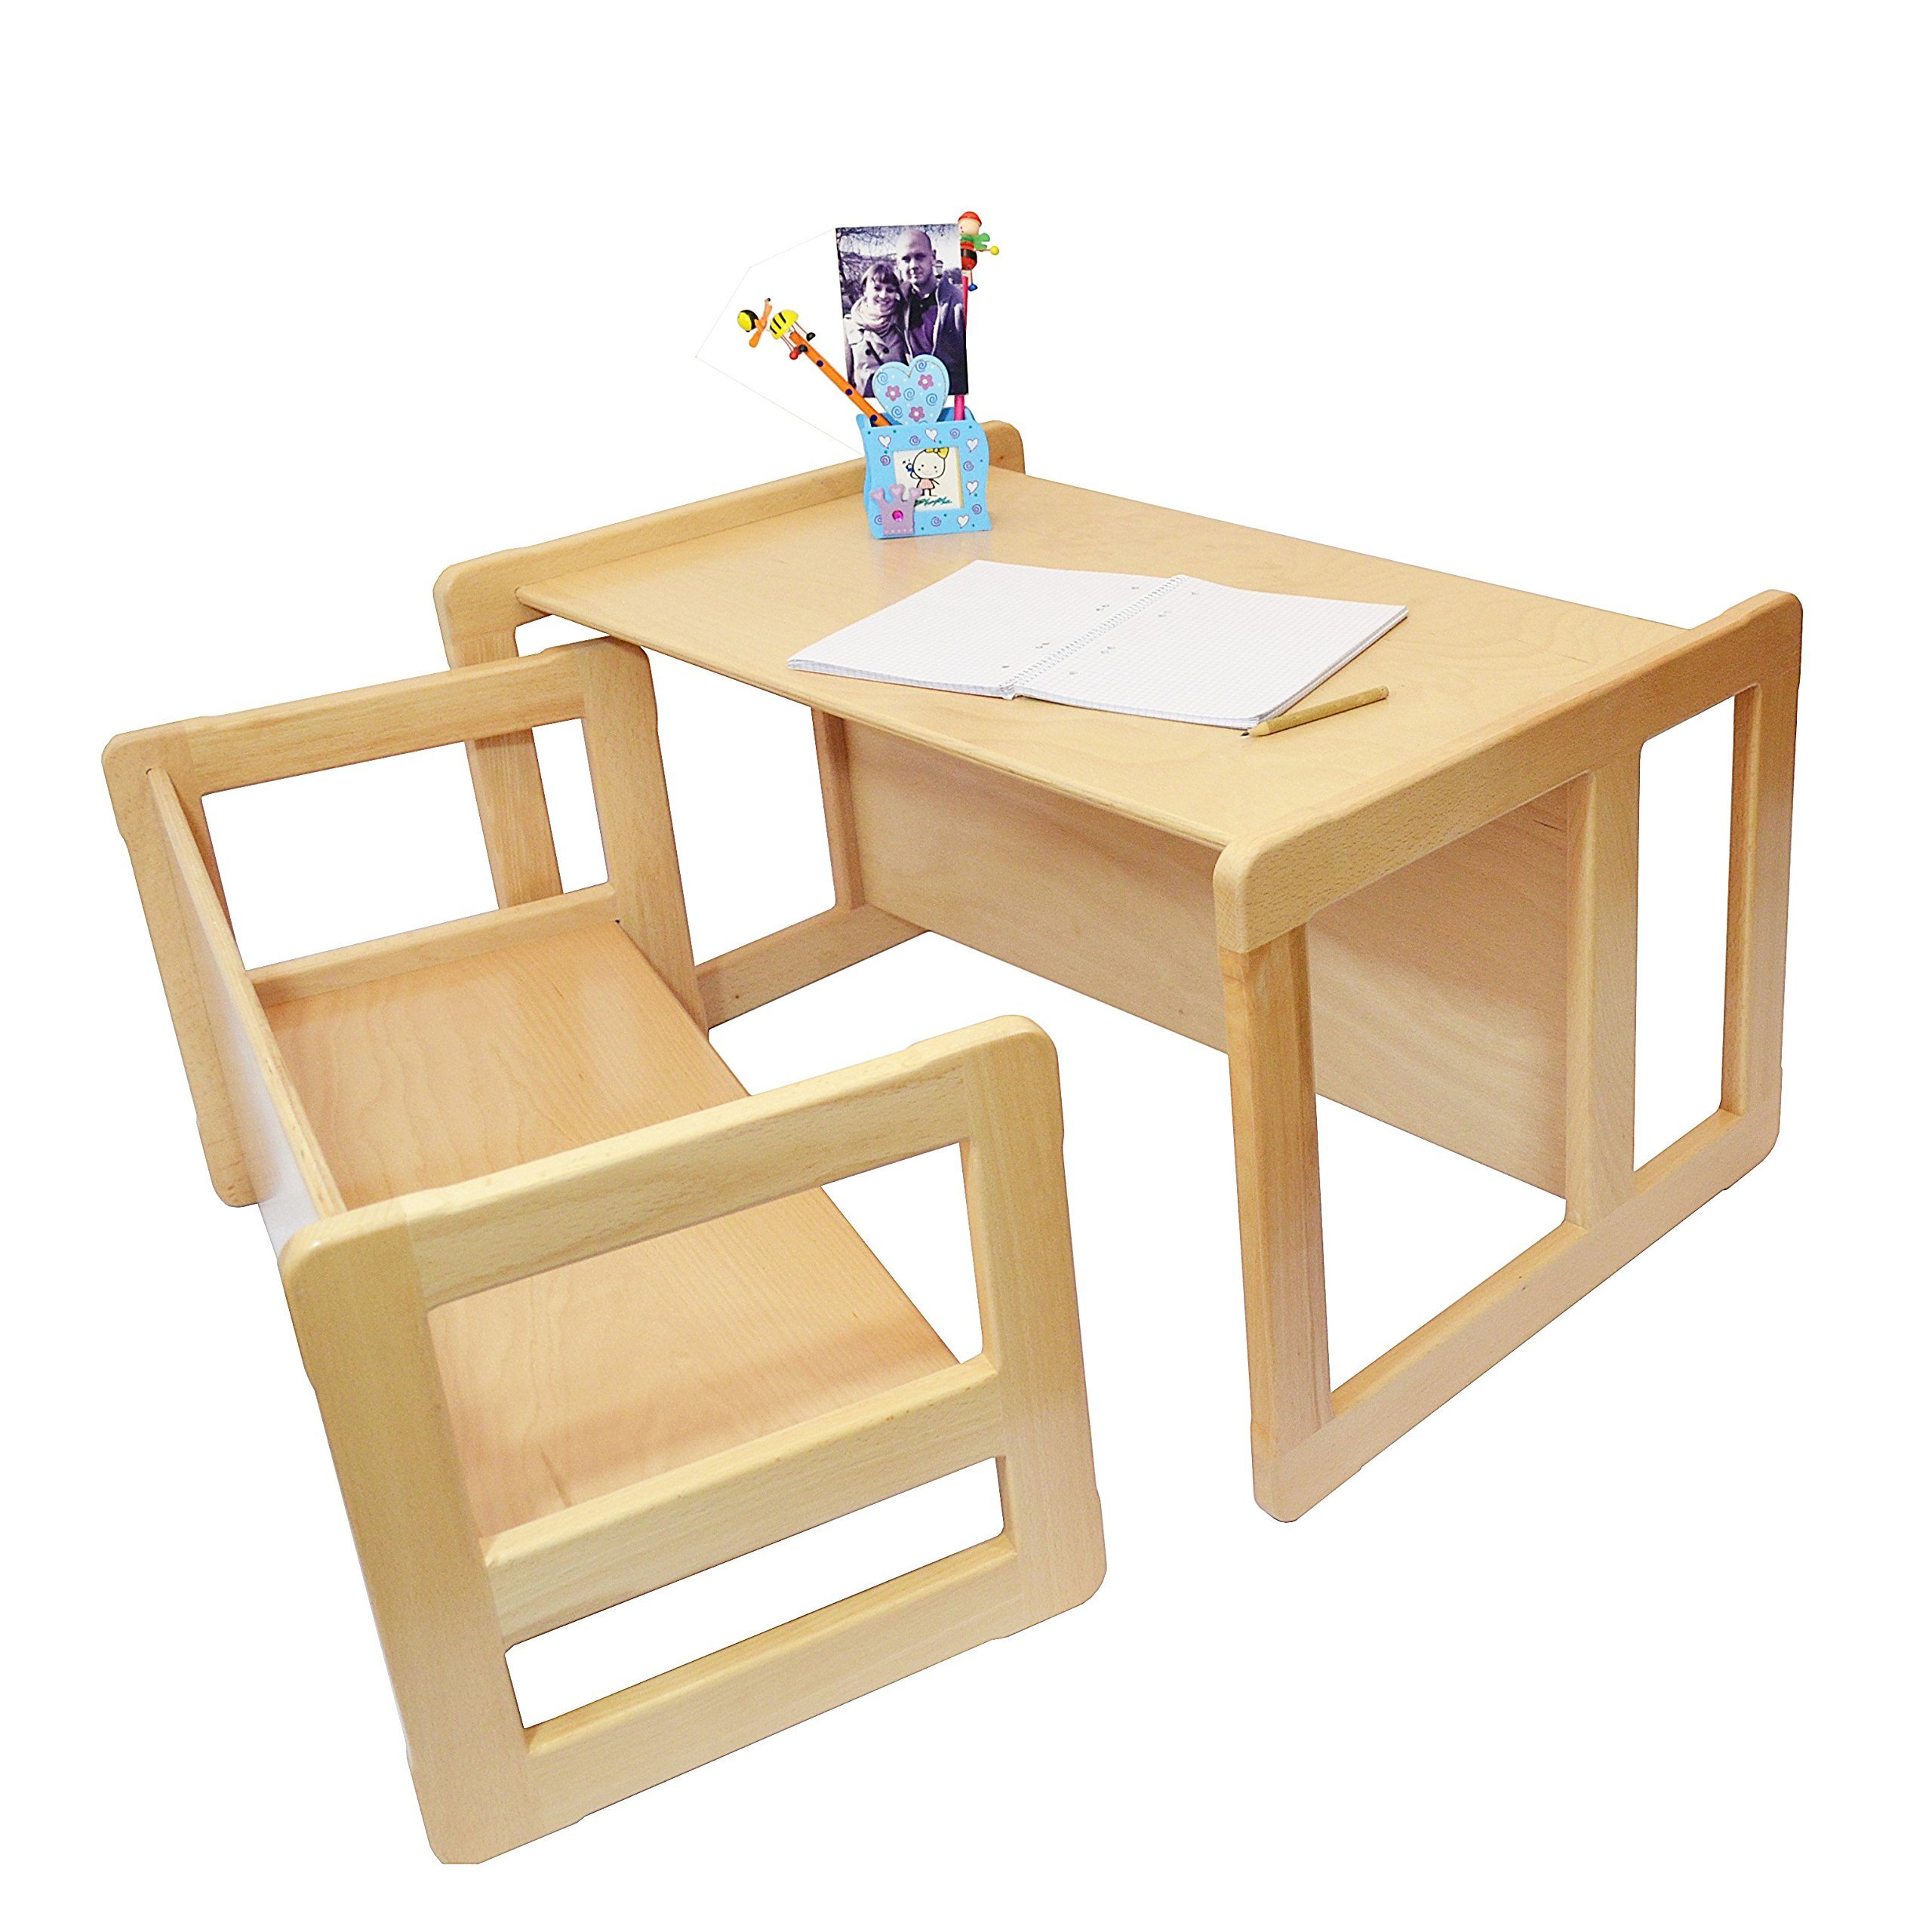 3 in 1 Childrens Multifunctional Furniture Set of 2, One Small Bench or Table and One Large Bench or Table Beech Wood, Natural